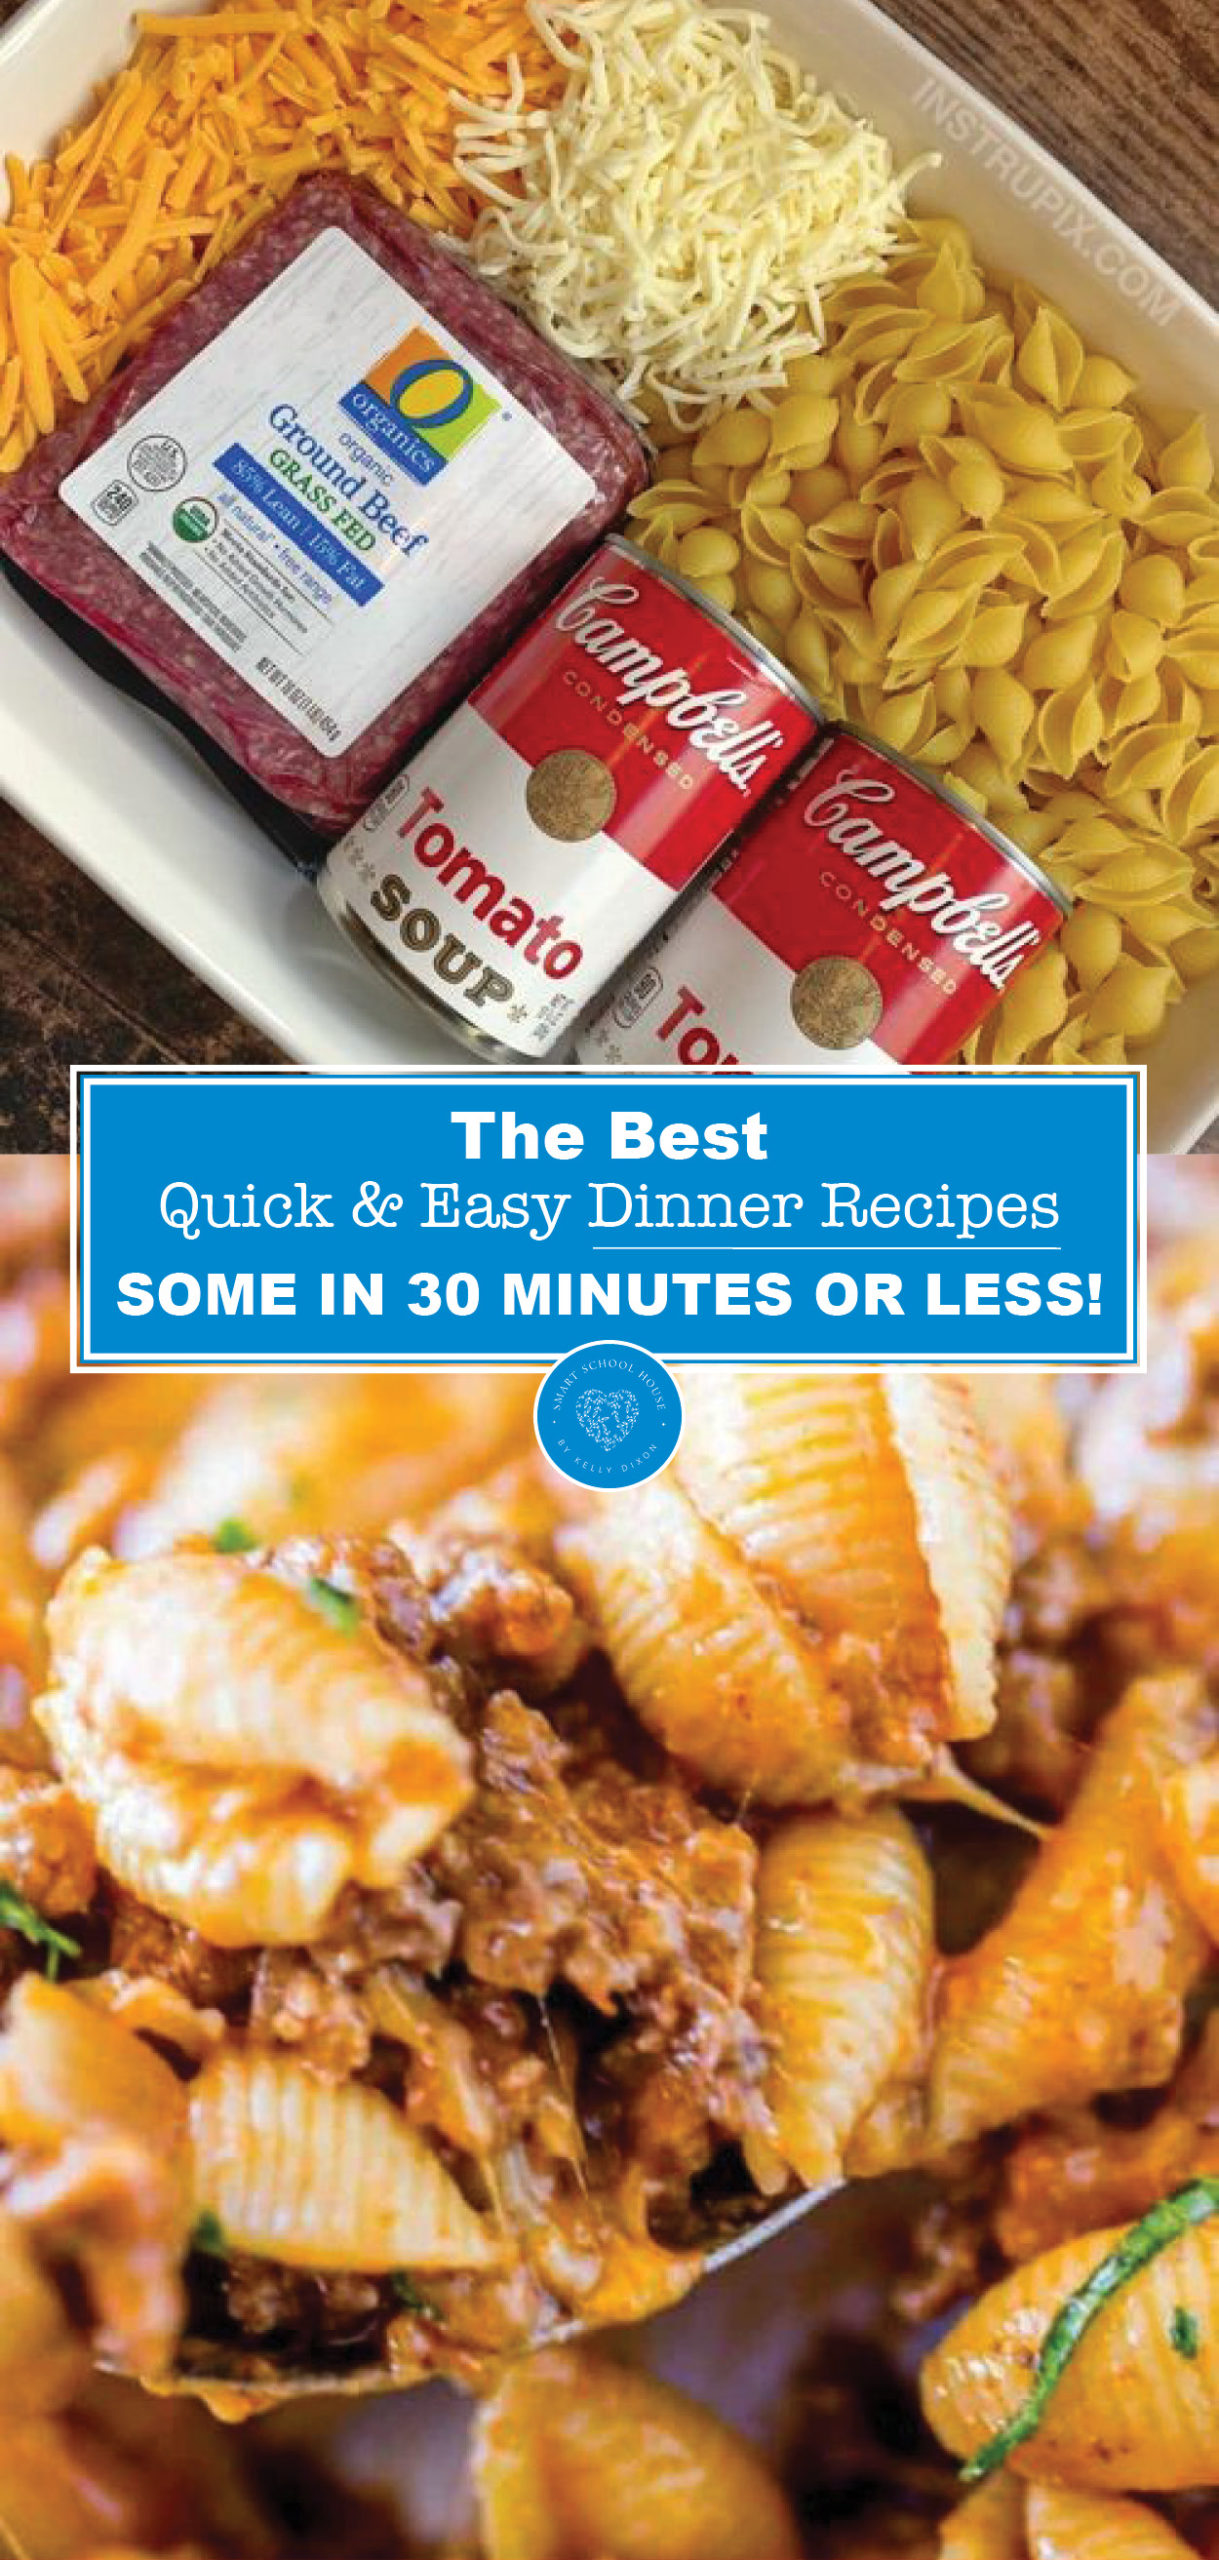 The Best Quick, Easy Dinner Recipes You Can Make... Some in 30 Minutes or Less! These meals are perfect for busy weeknights.